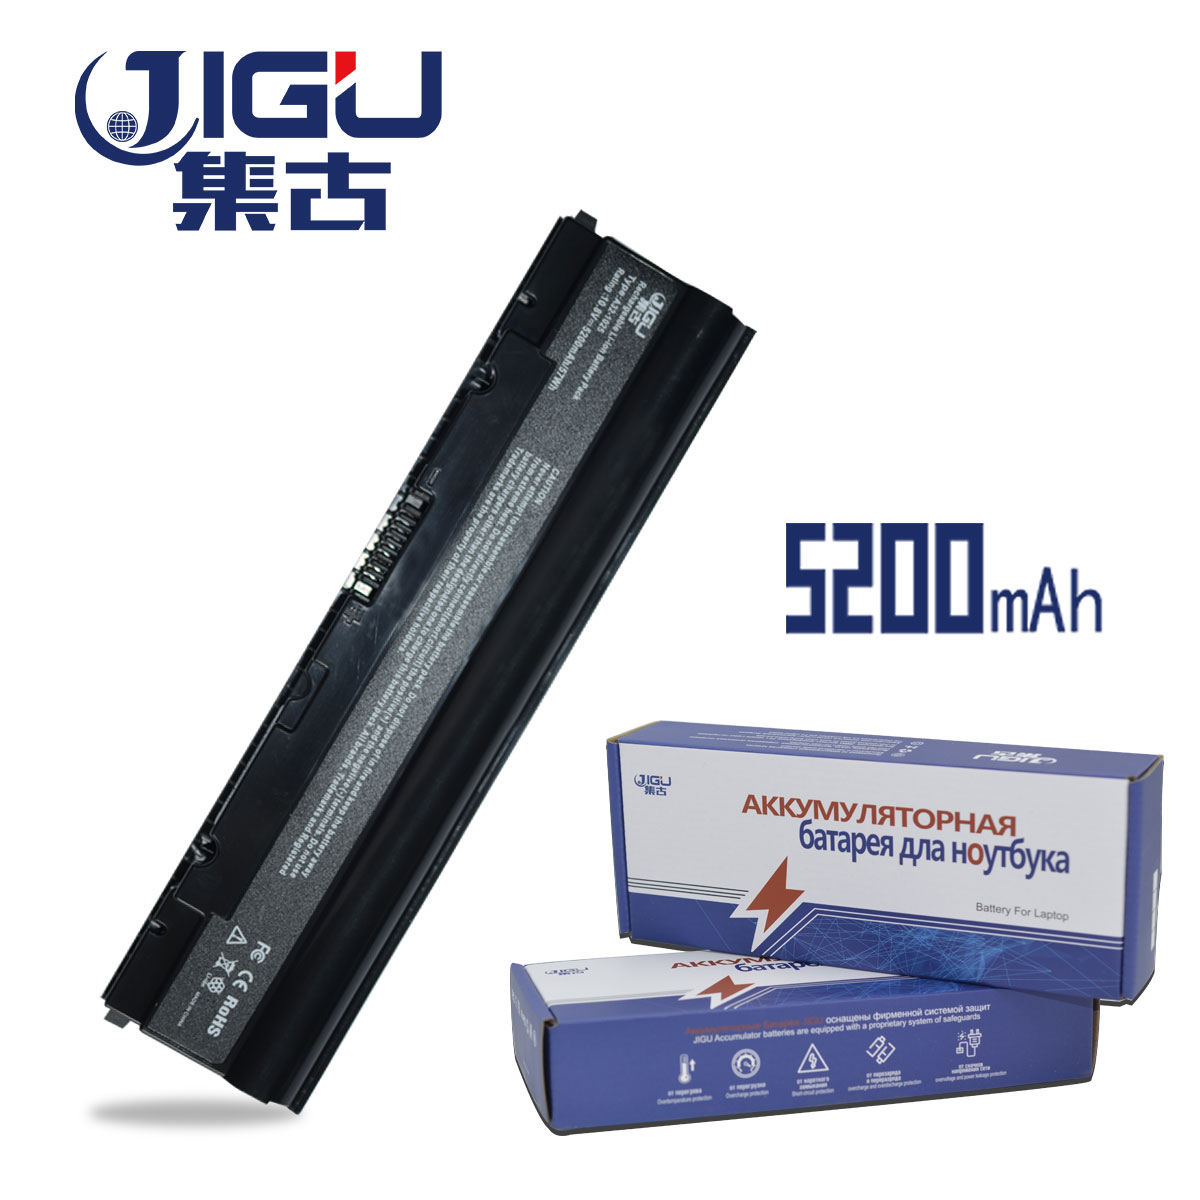 JIGU 5200MAH Laptop Battery A31-1025 A32-1025 For Asus For Eee PC 1025 1025C 1025CE 1225 1215 1225B 1225C R052 R052C R052CE